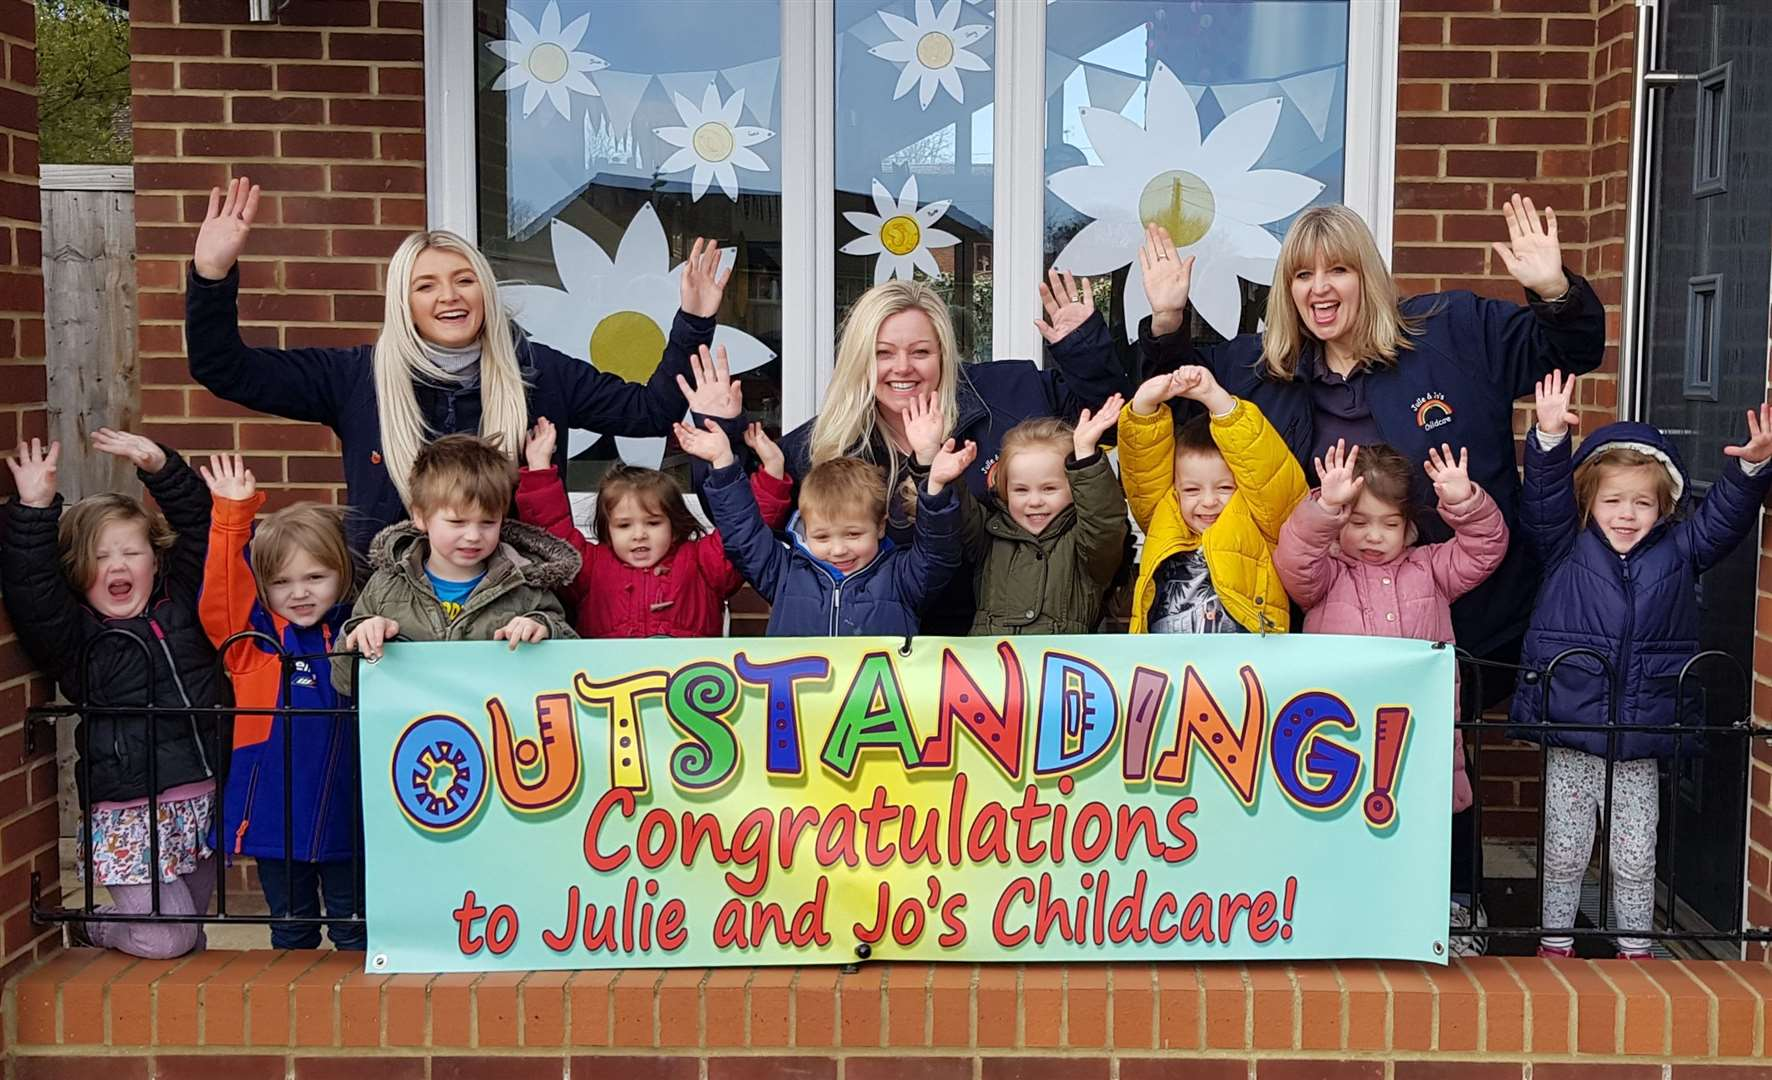 Julie & Jo's Childcare in Linton have been rated 'outstanding' by Ofsted. Contributed picture